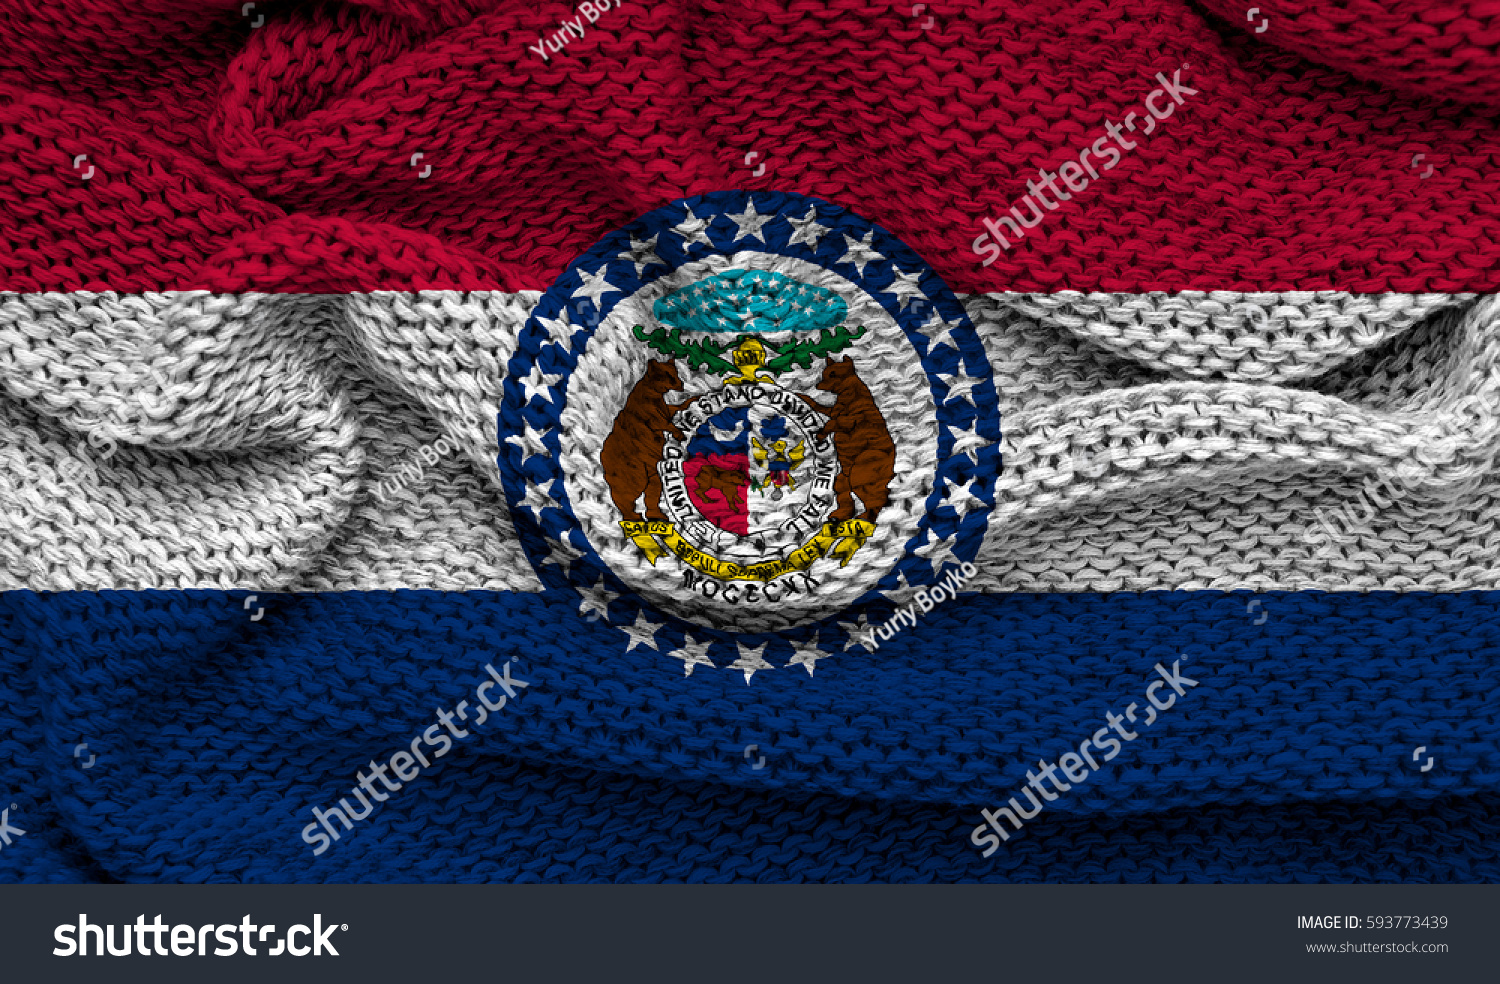 Flag missouri state usa stock illustration 593773439 shutterstock flag of missouri state usa buycottarizona